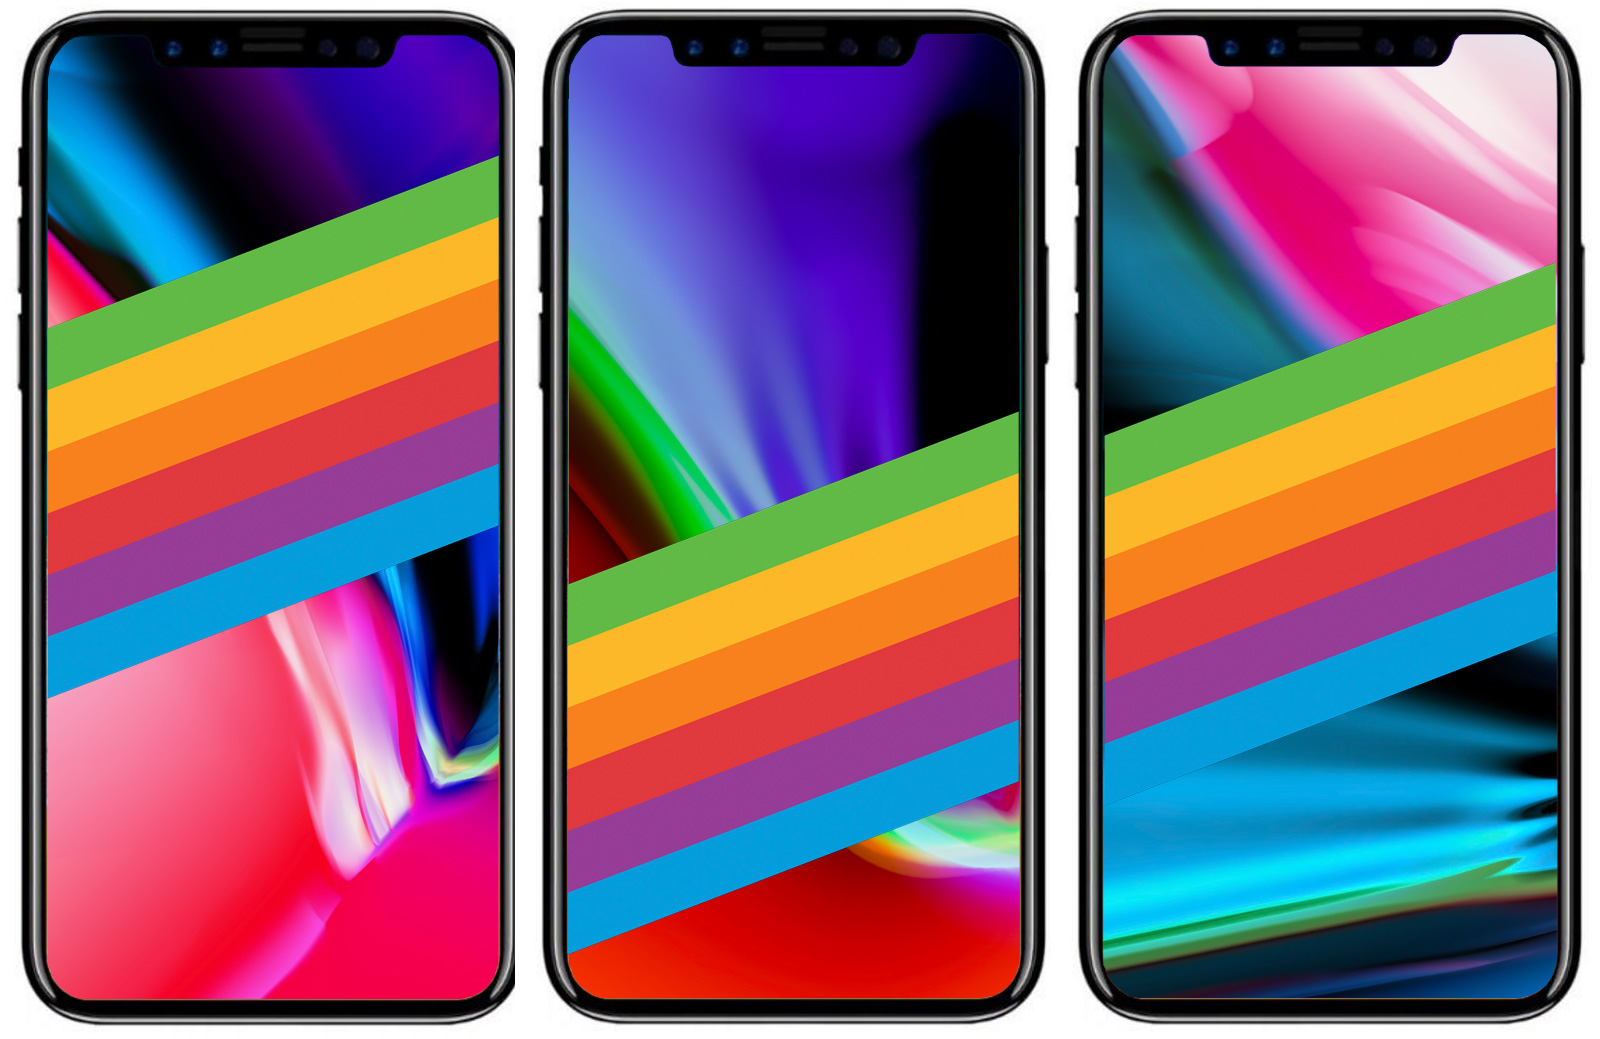 Fondos de pantalla del arcoiris de Apple para iPhone